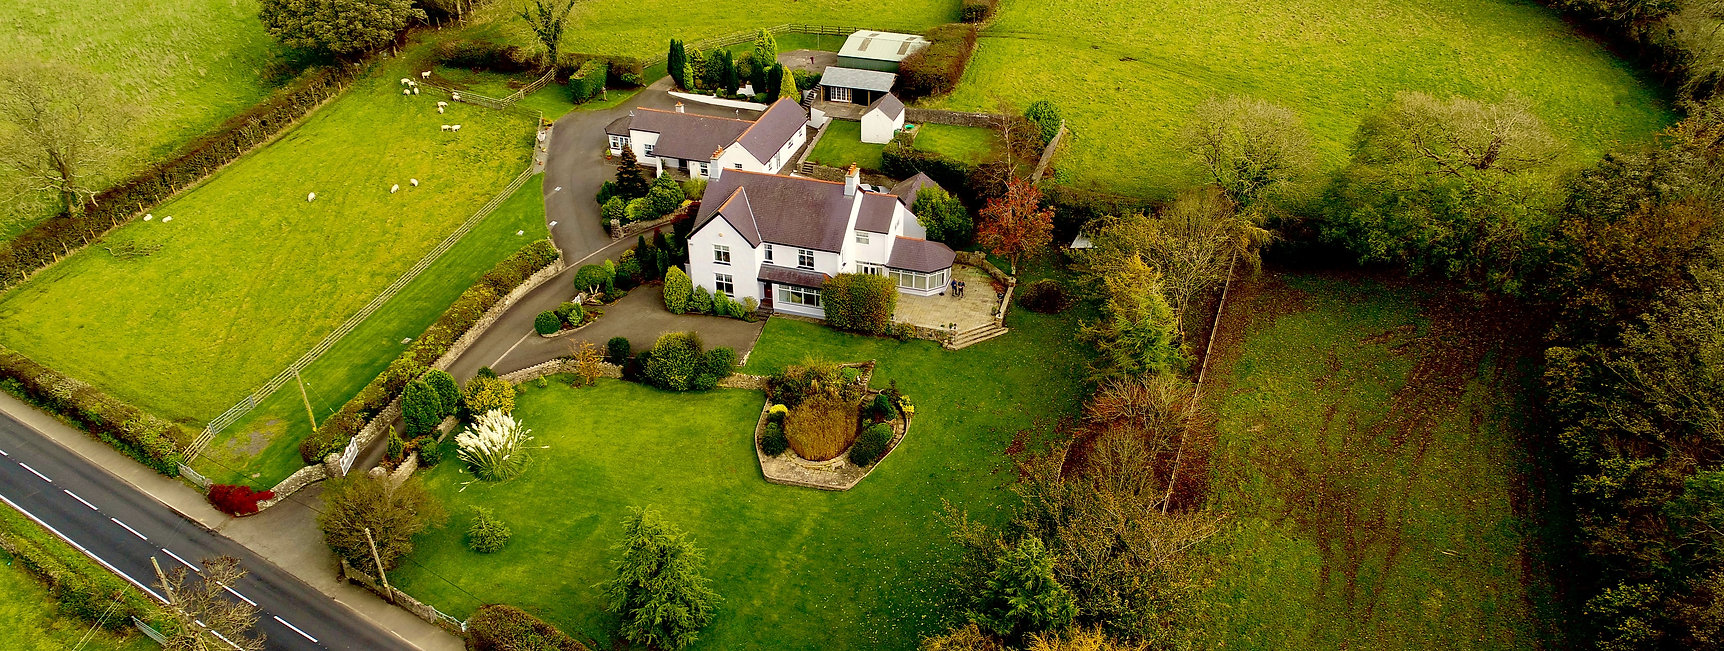 Stunning Aerial photographs for property marketing, supplied by Firefly Aerial imaging, Commercial Drone services.